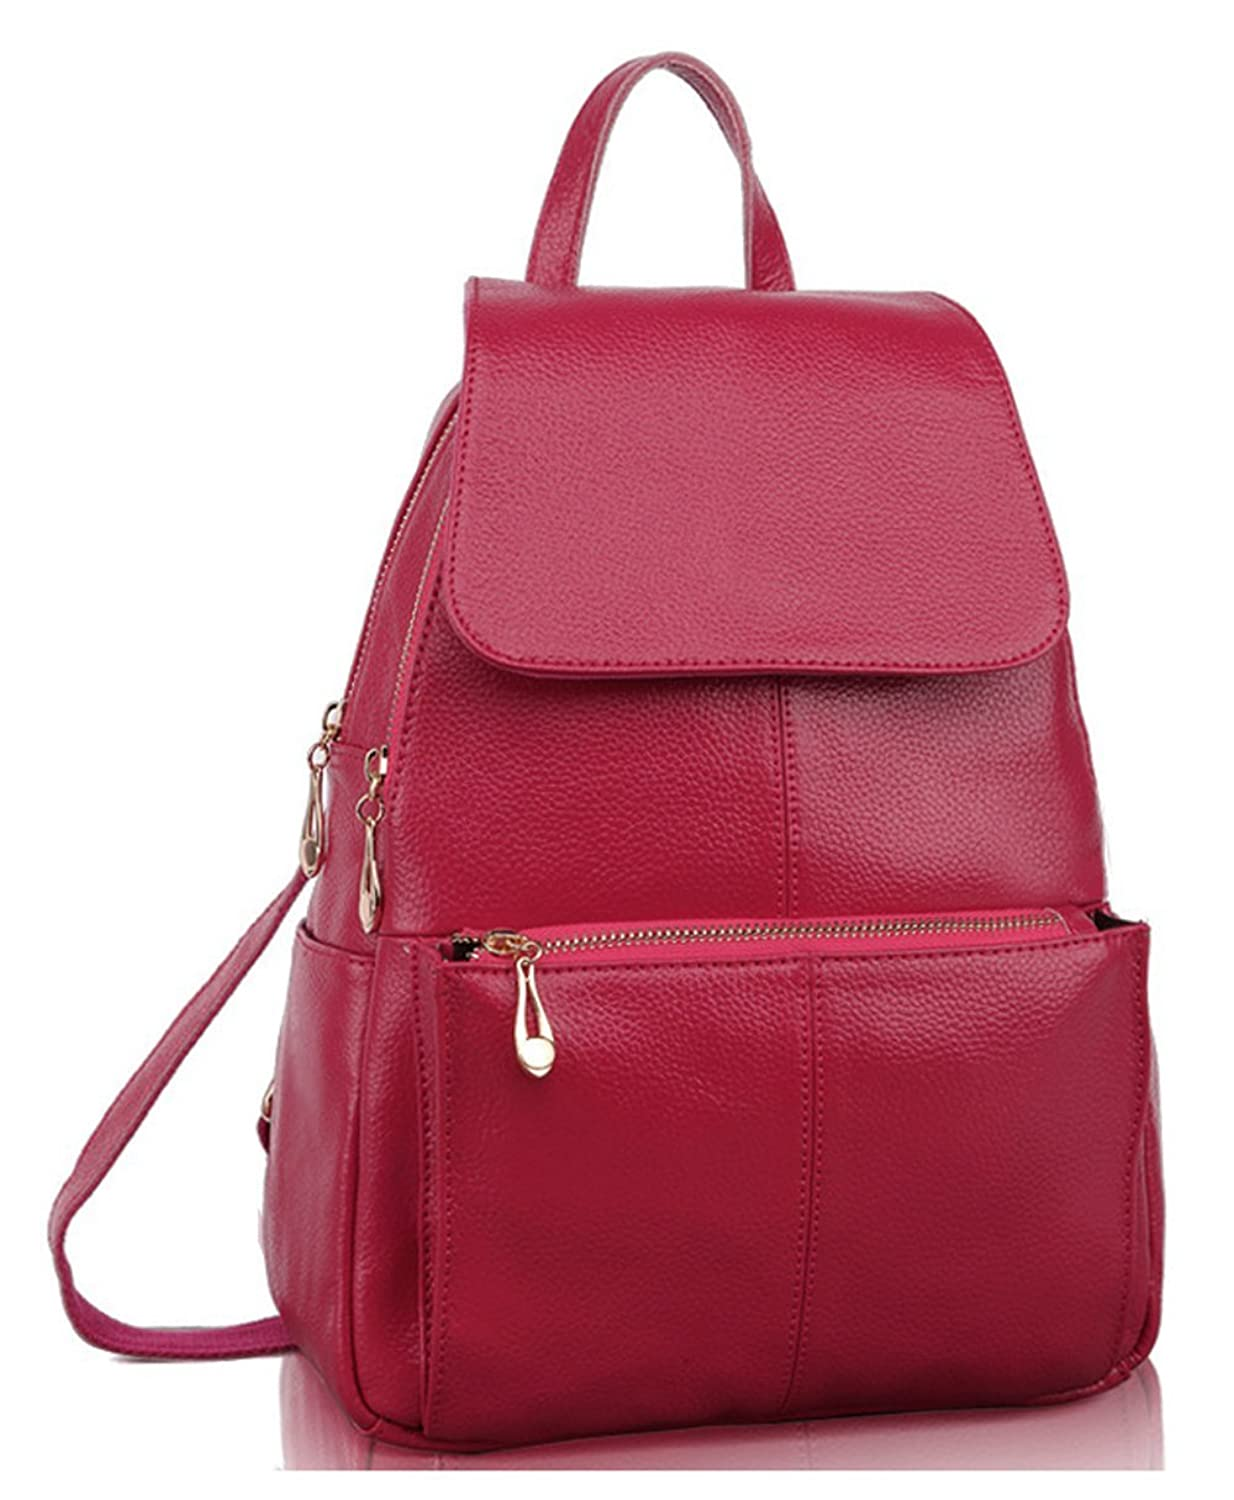 Keshi Leather Fashion Backpack Bag, Fashion Cute Lightweight Backpacks for Teen Young Girls